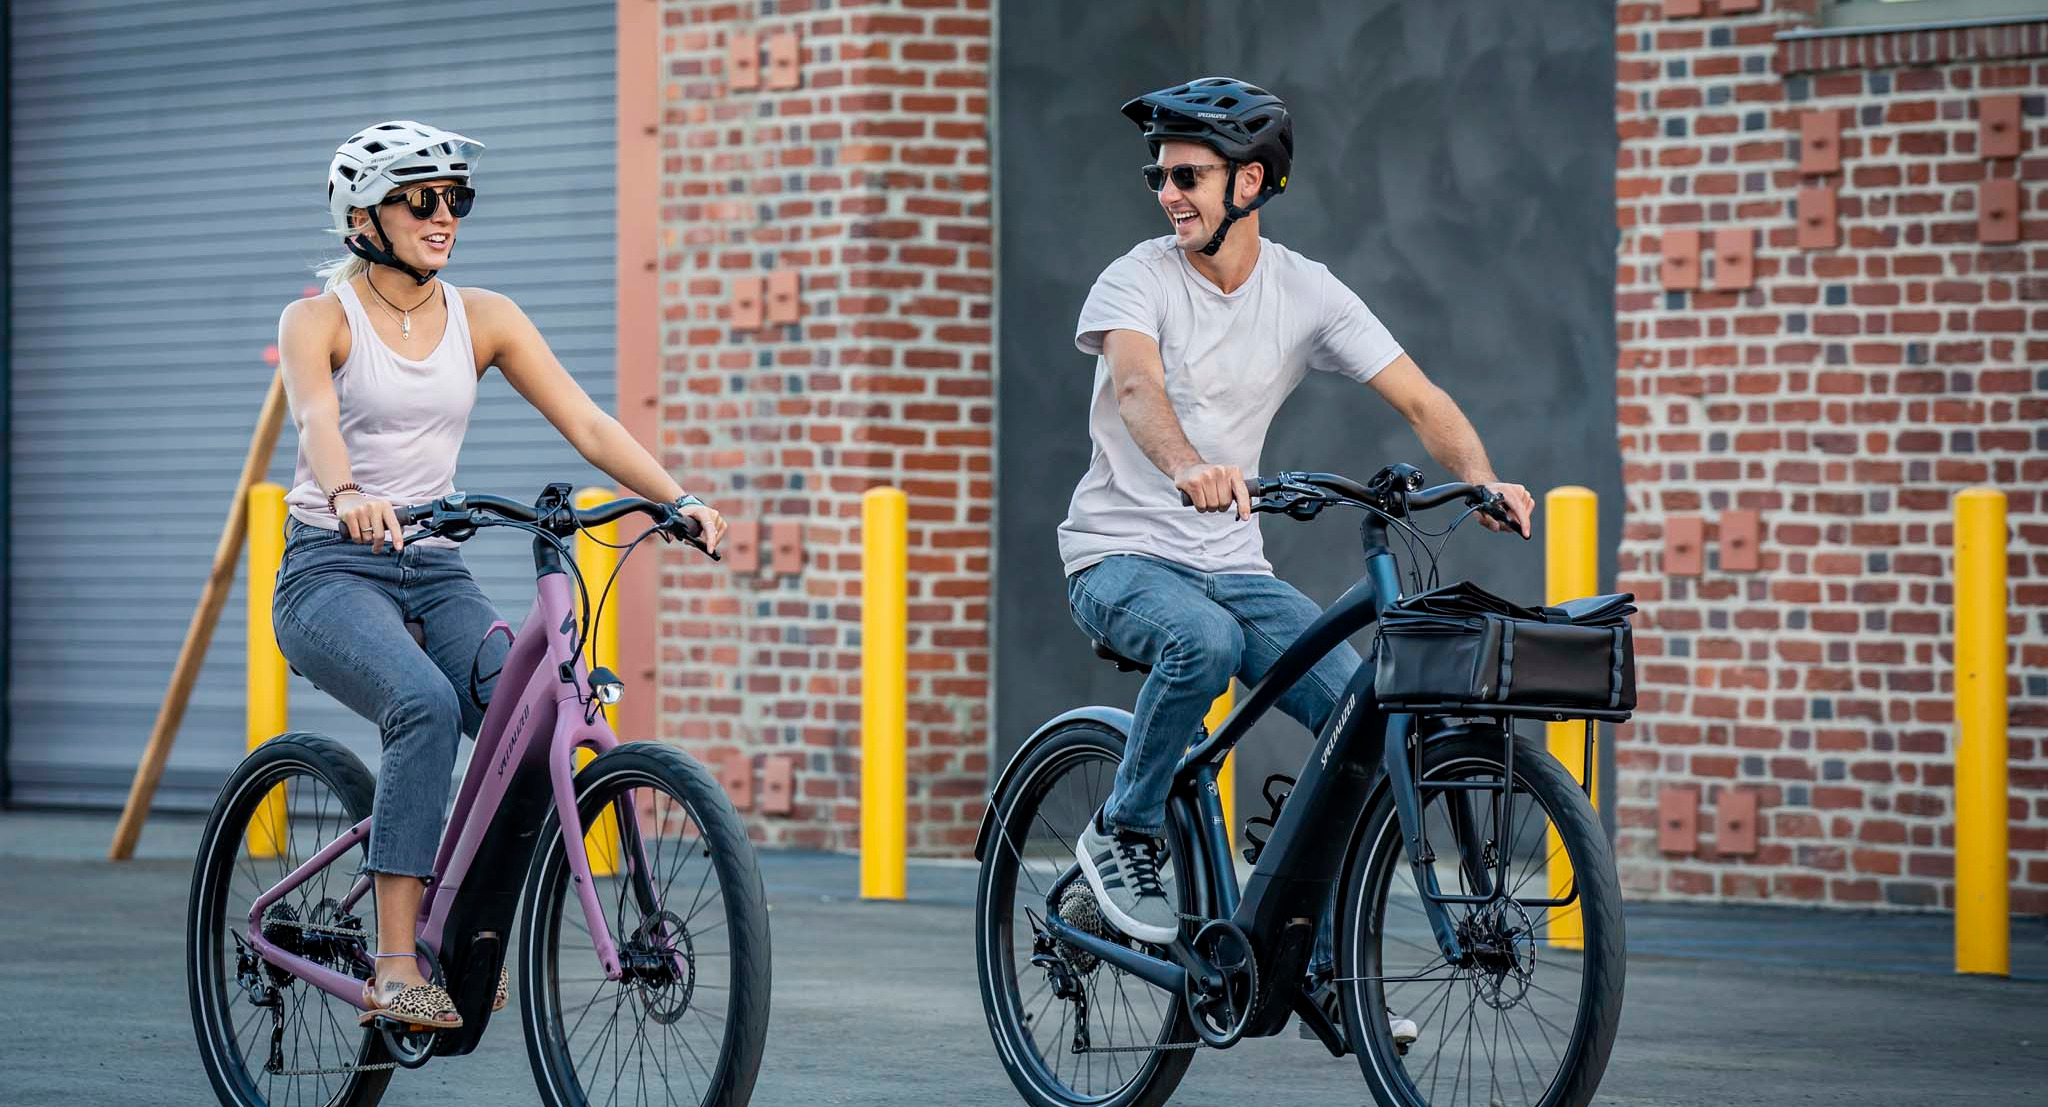 couple riding specialized ebikes